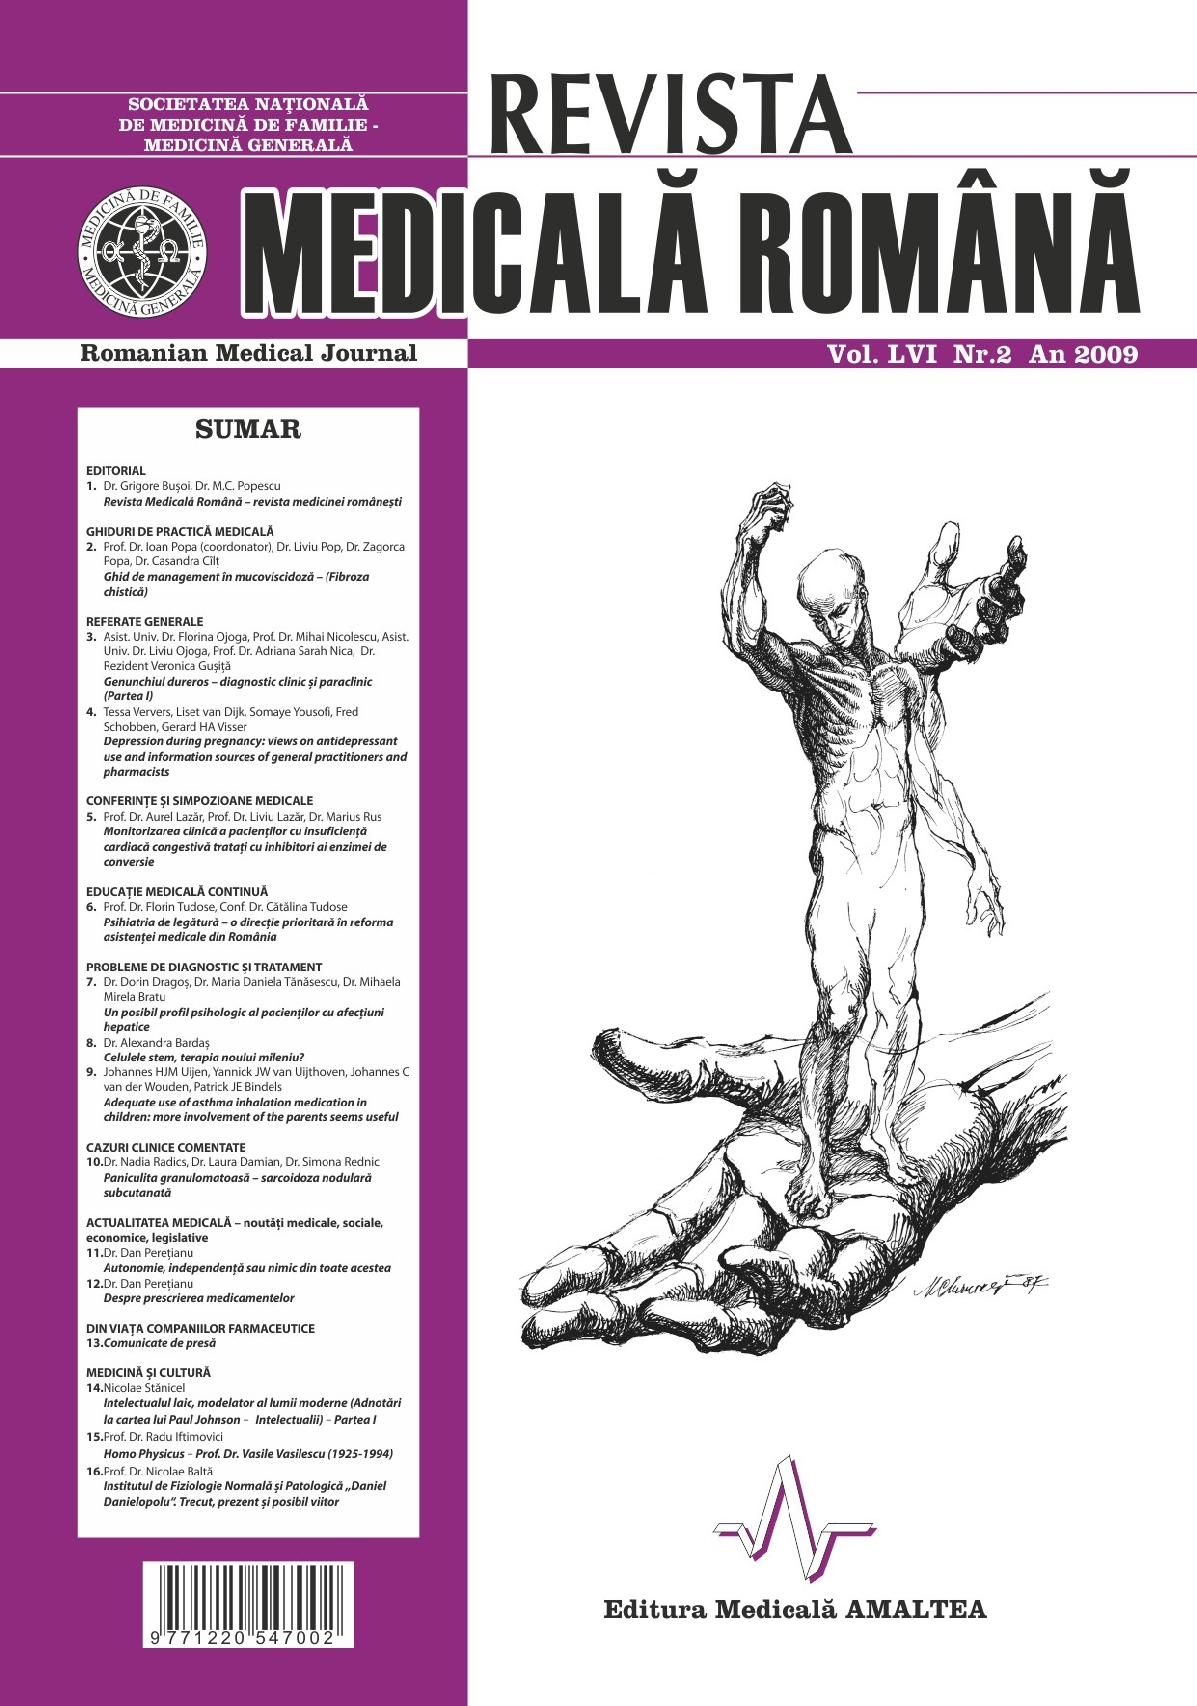 REVISTA MEDICALA ROMANA - Romanian Medical Journal, Vol. LVI, Nr. 2, An 2009